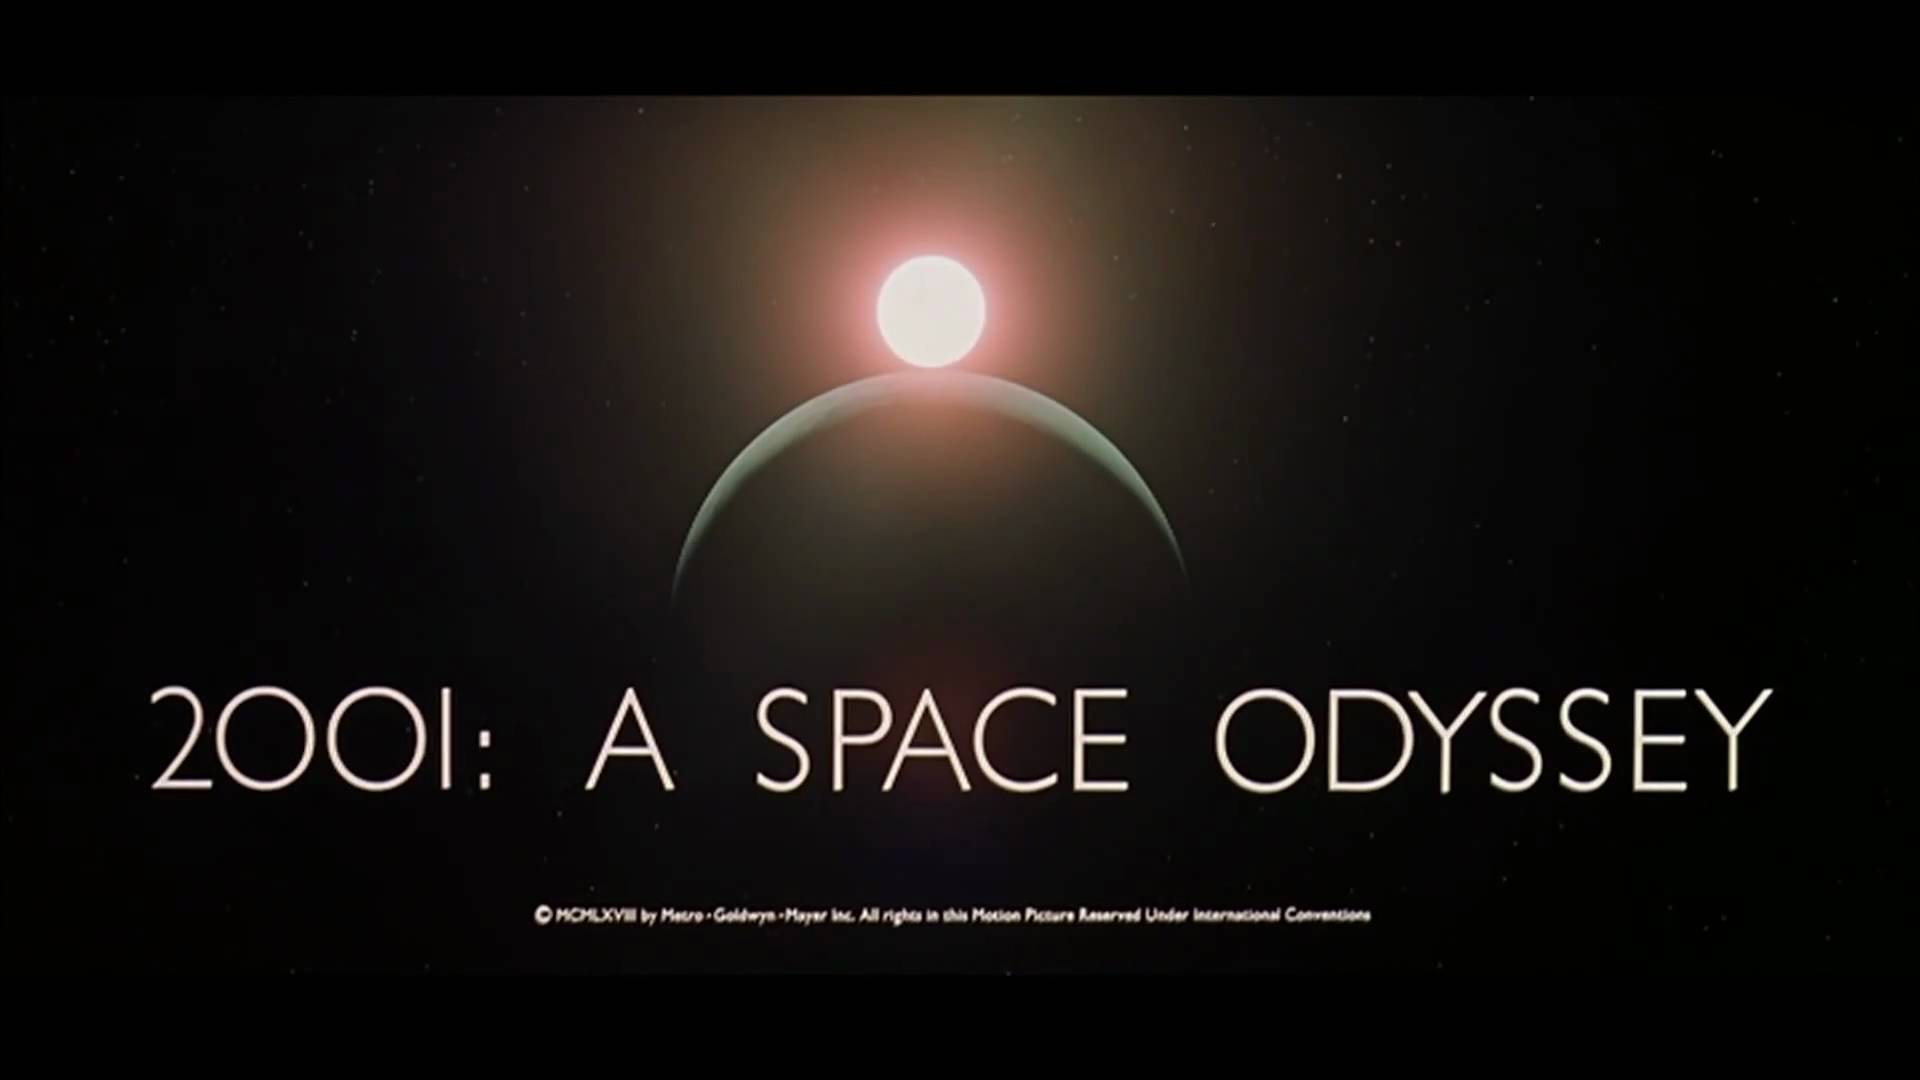 HQ 2001: A Space Odyssey Wallpapers | File 45.84Kb